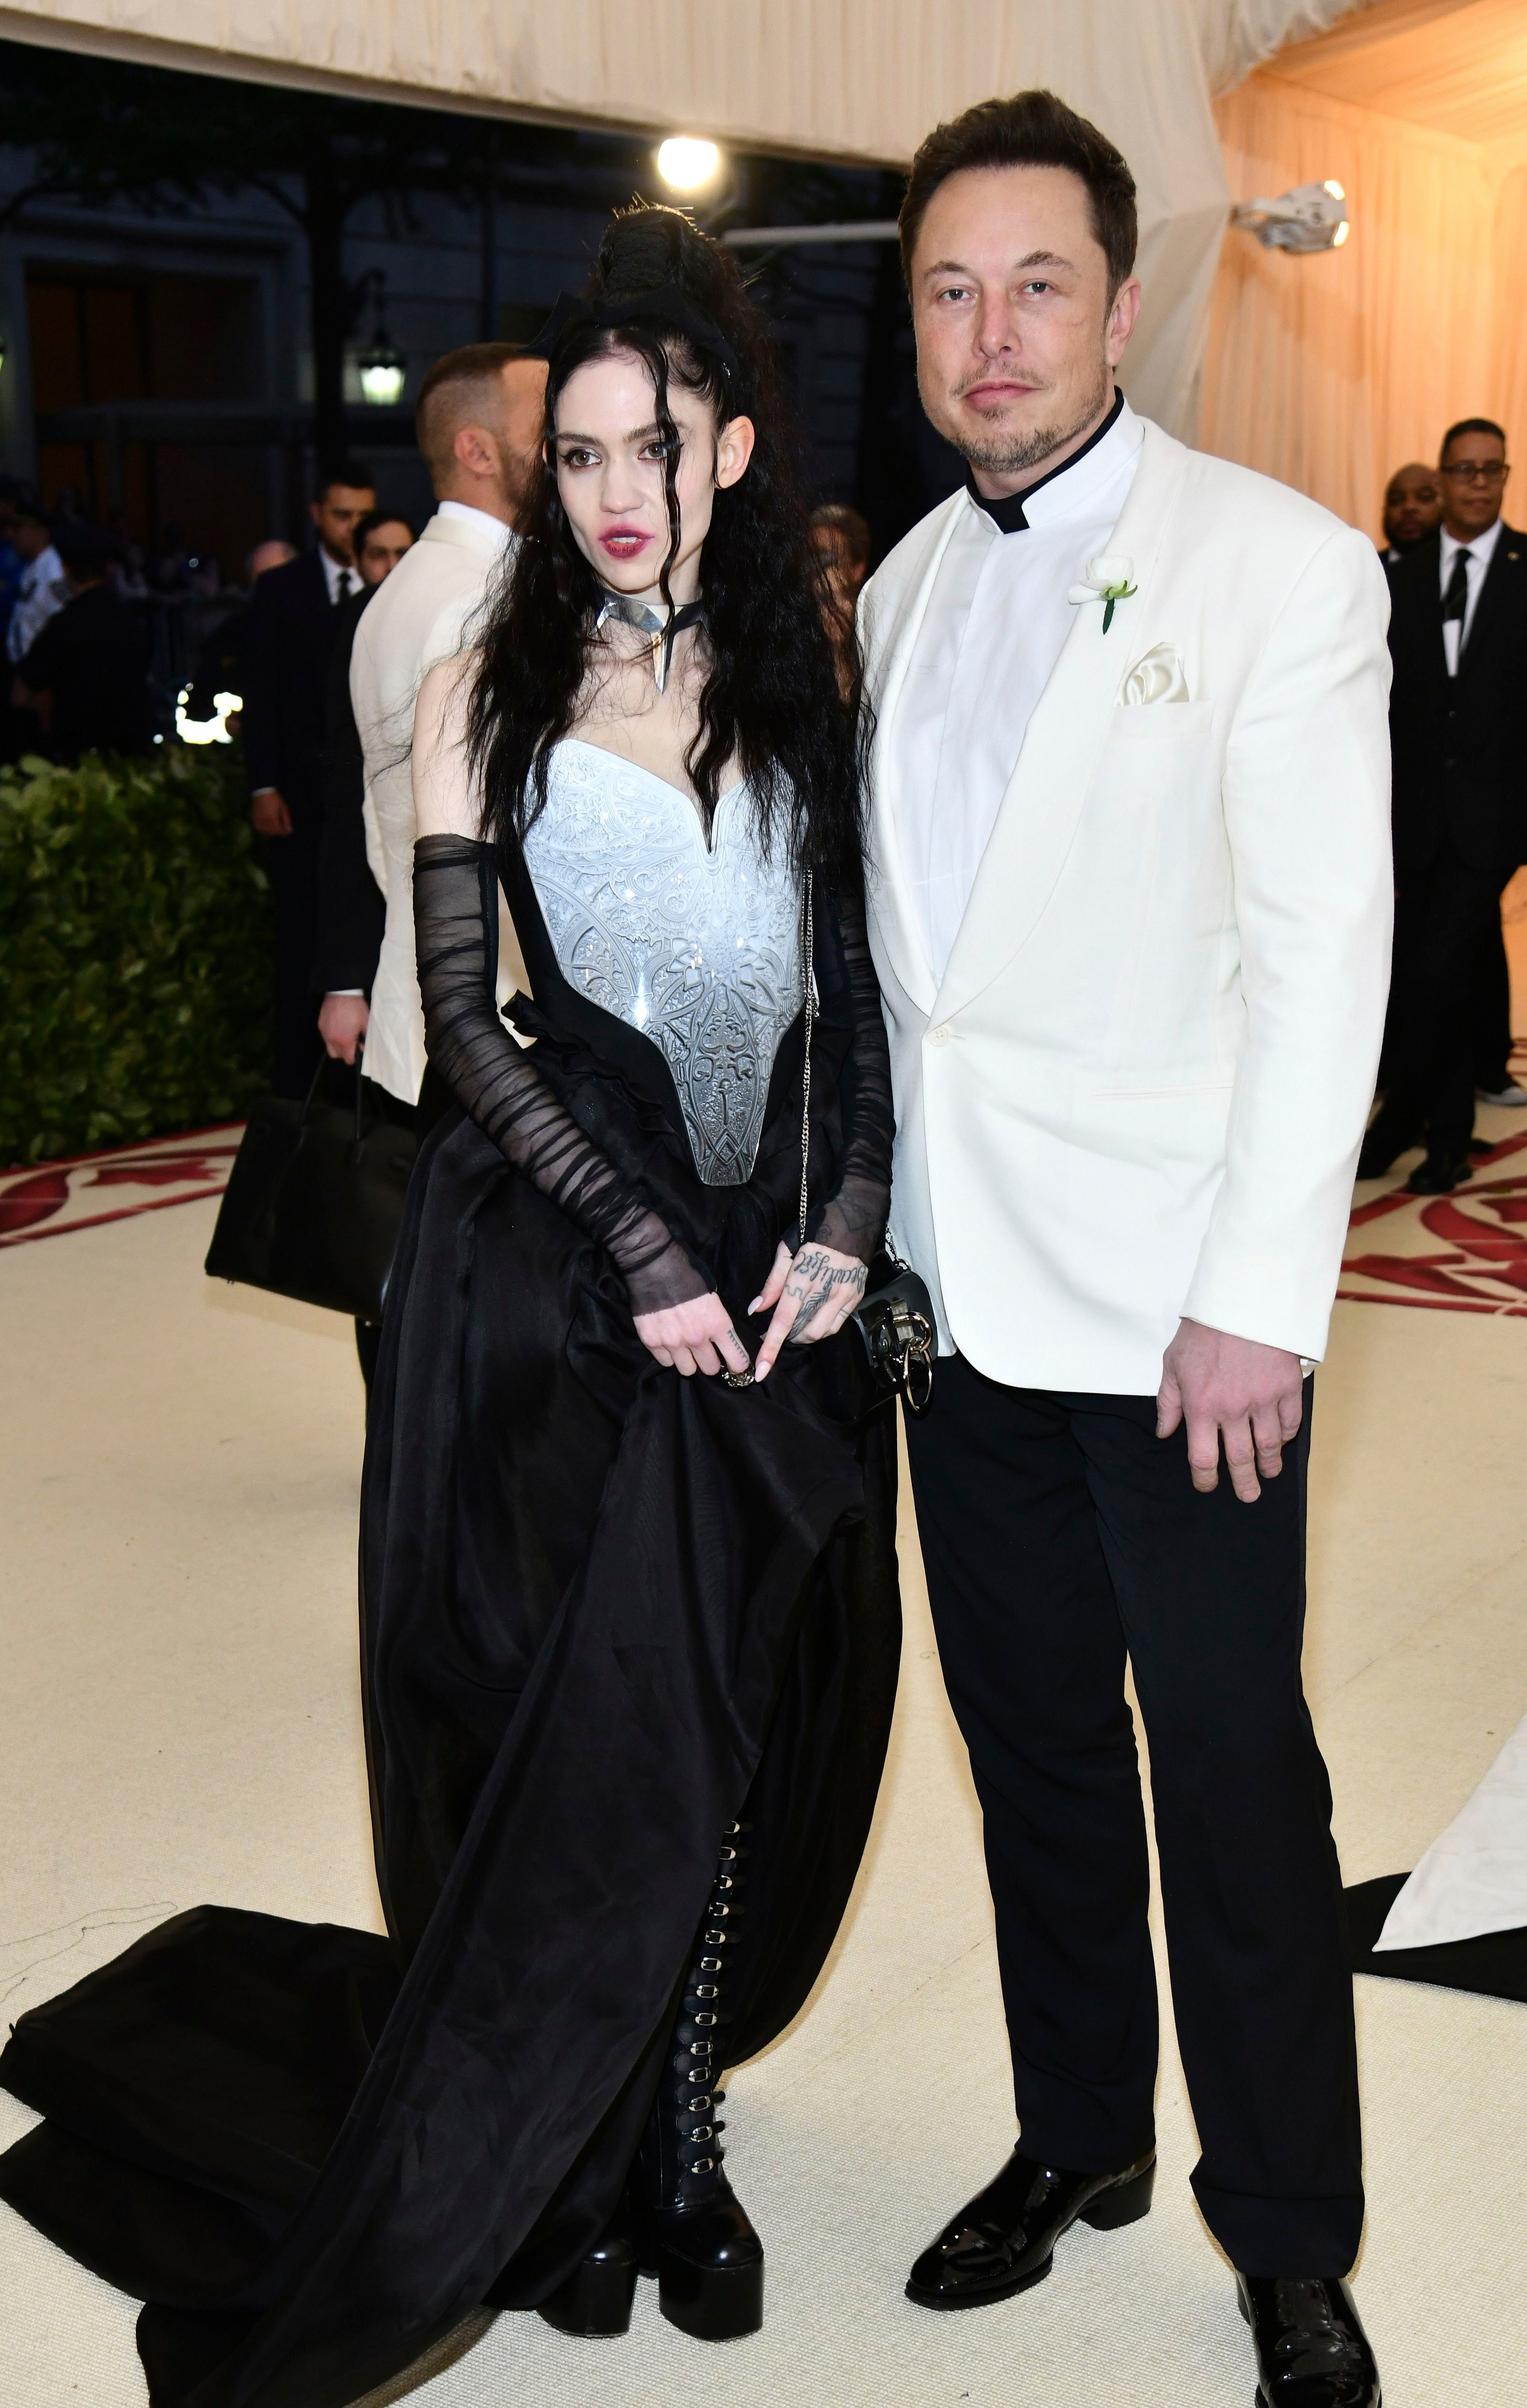 Grimes and Elon Musk at the Met Gala (Charles Sykes/Invision/AP/REX/Shutterstock)